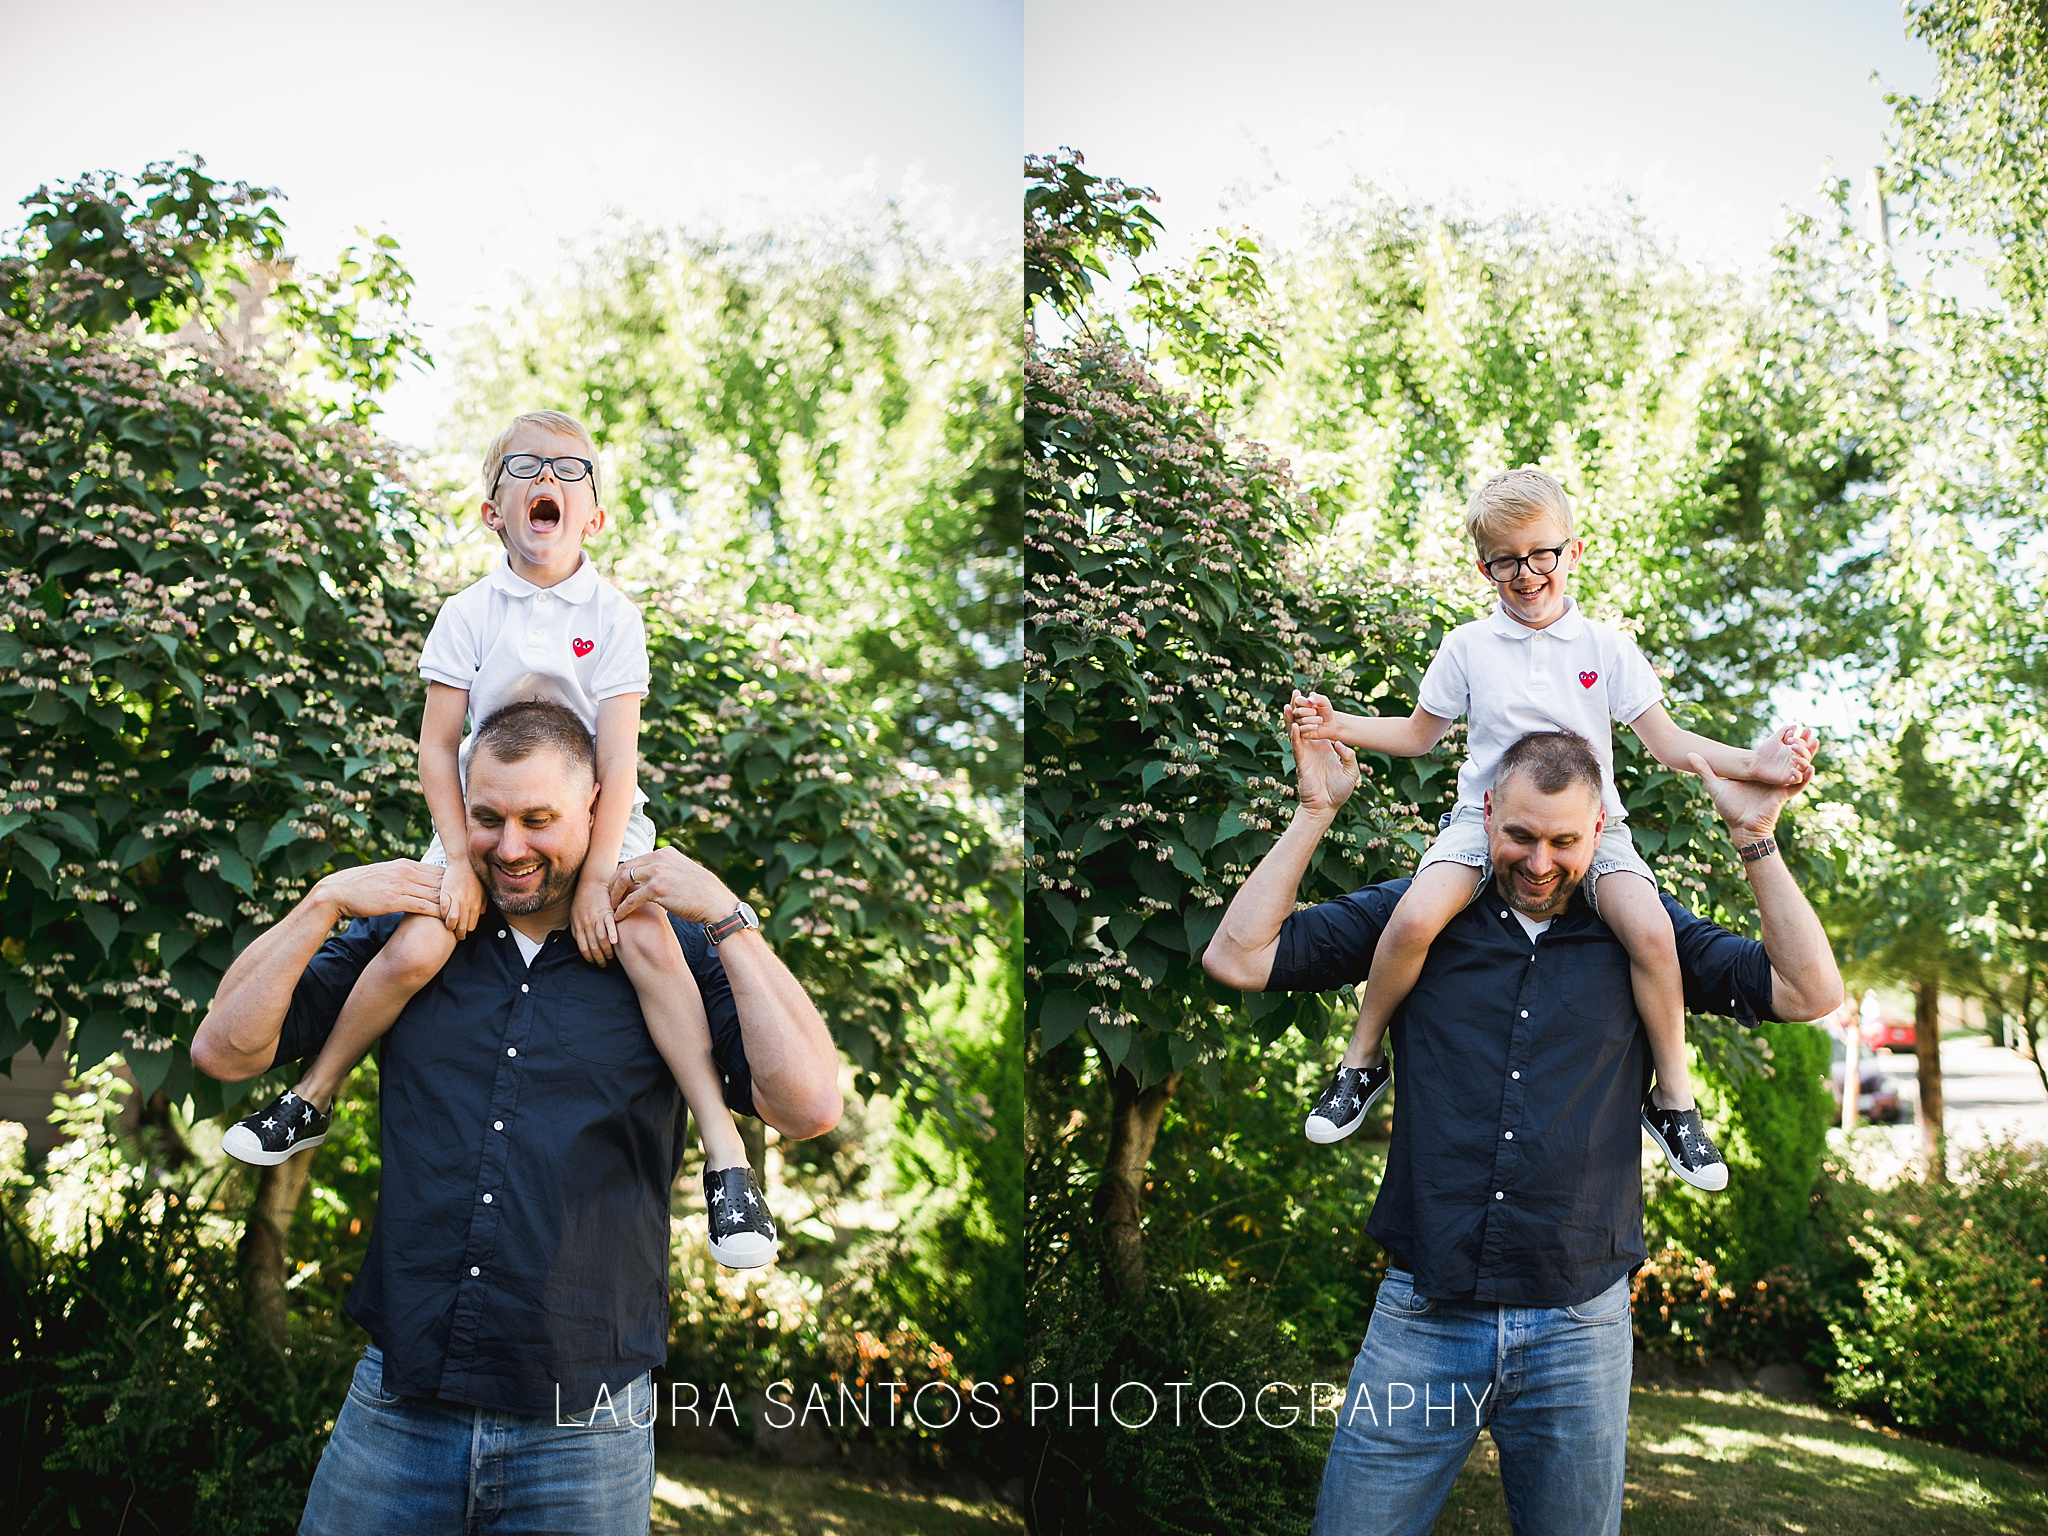 Laura Santos Photography Portland Oregon Family Photographer_1176.jpg